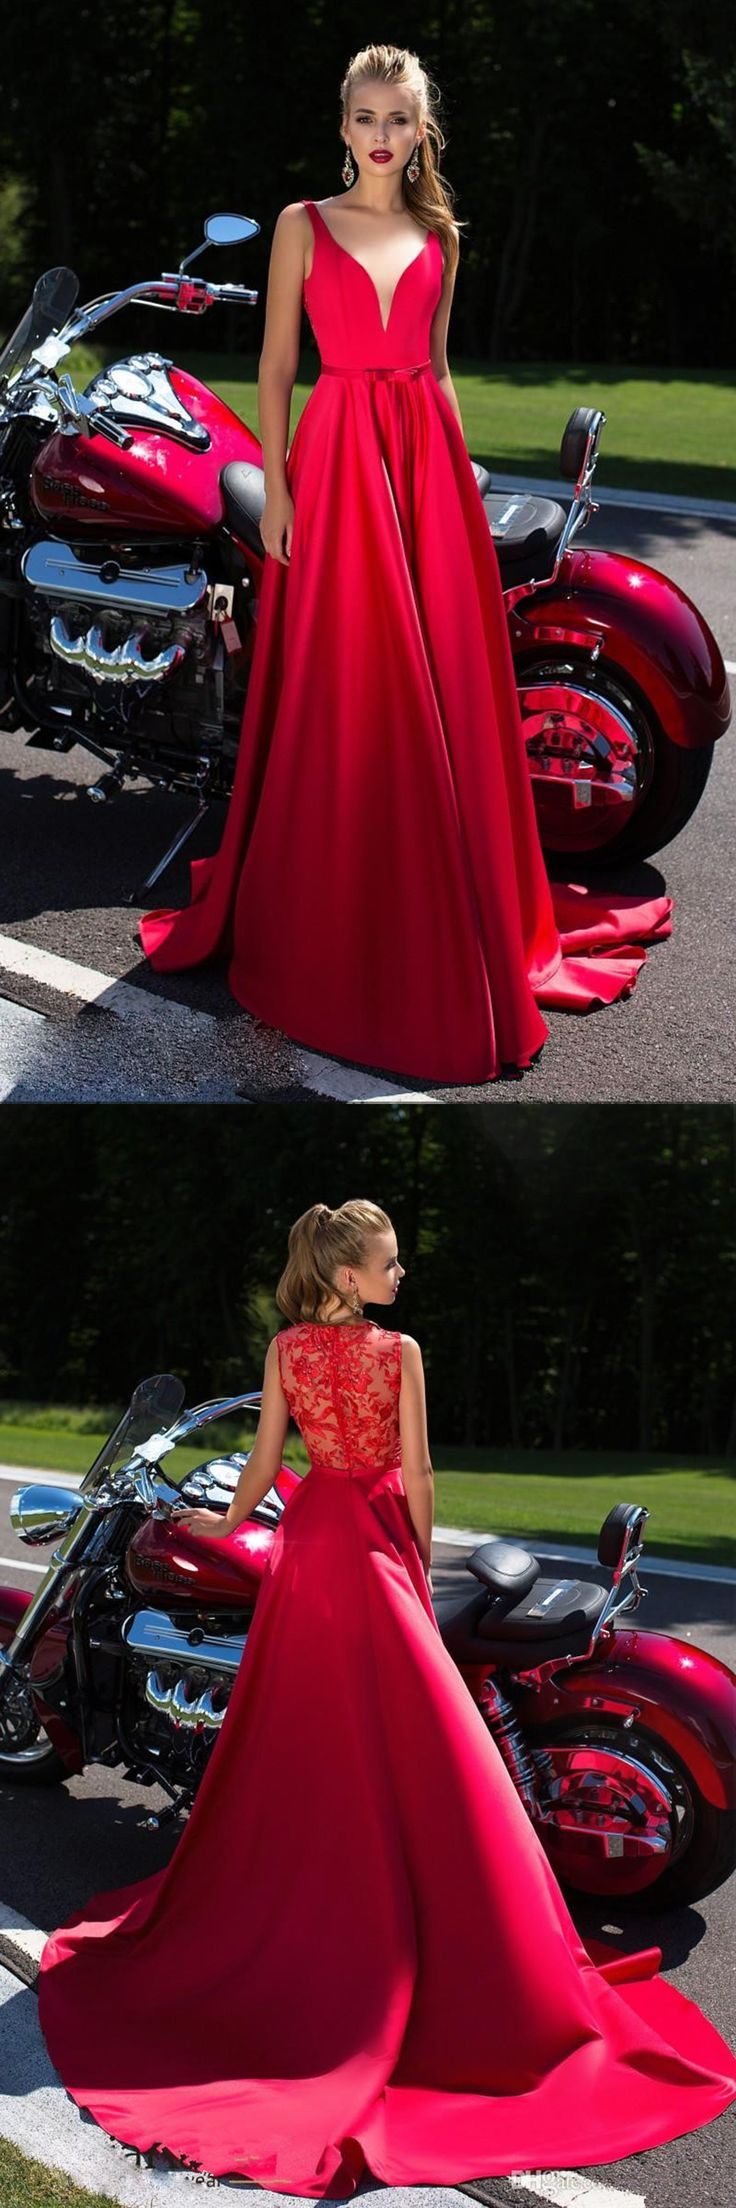 best prom dress ideas for girls images on pinterest party wear